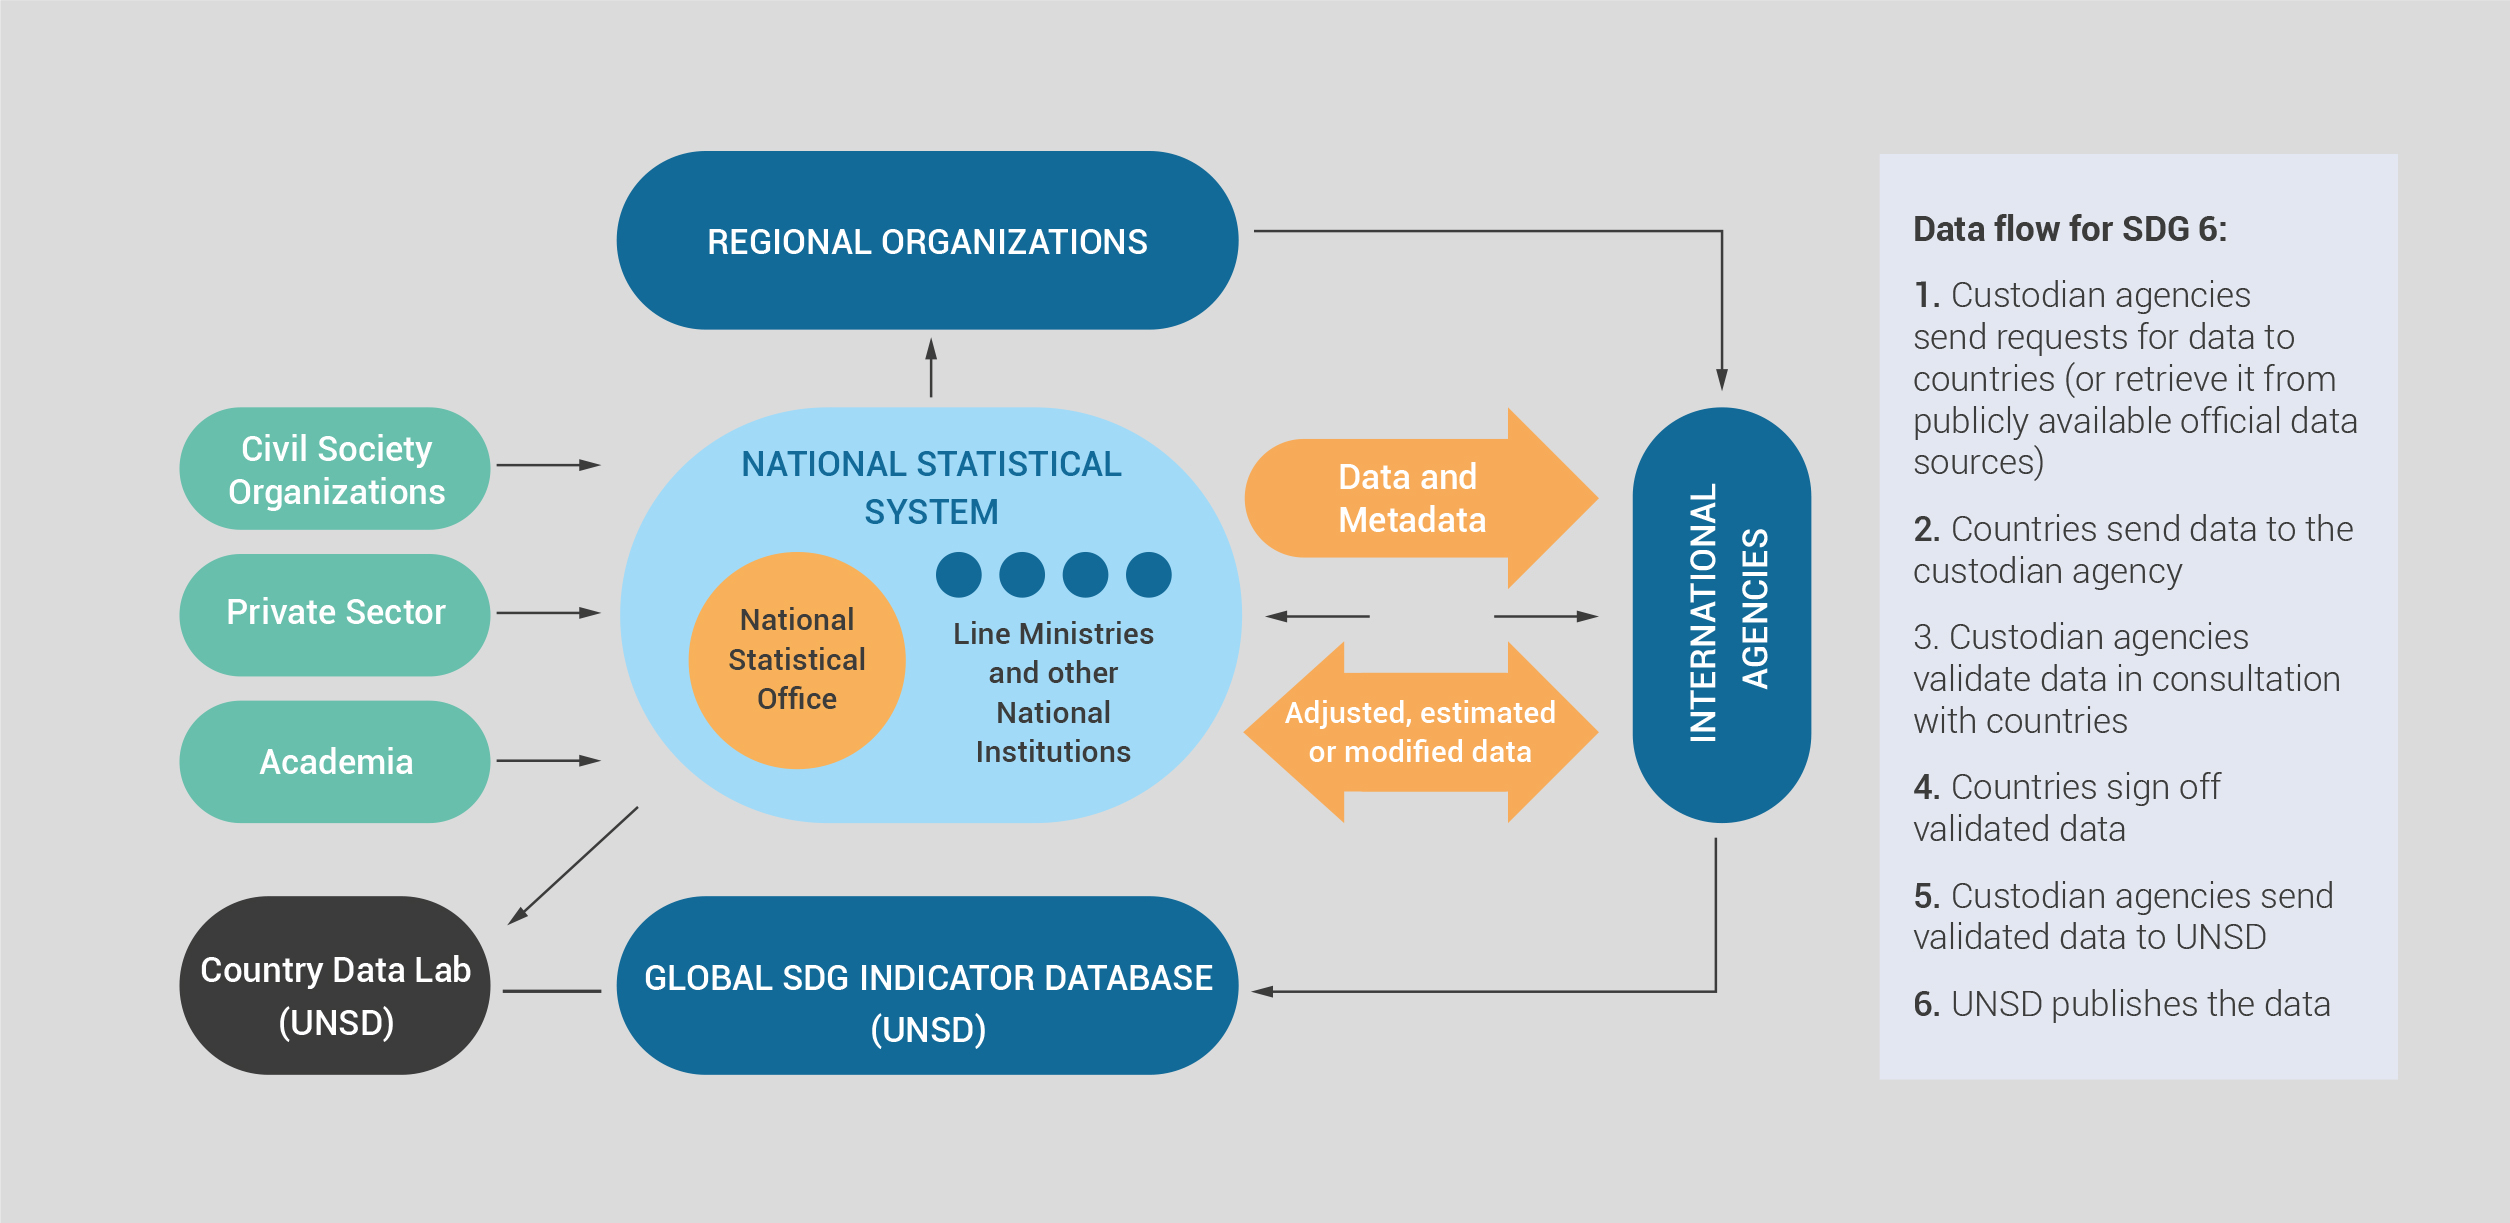 Roles and responsibilities for SDG 6 monitoring and reporting